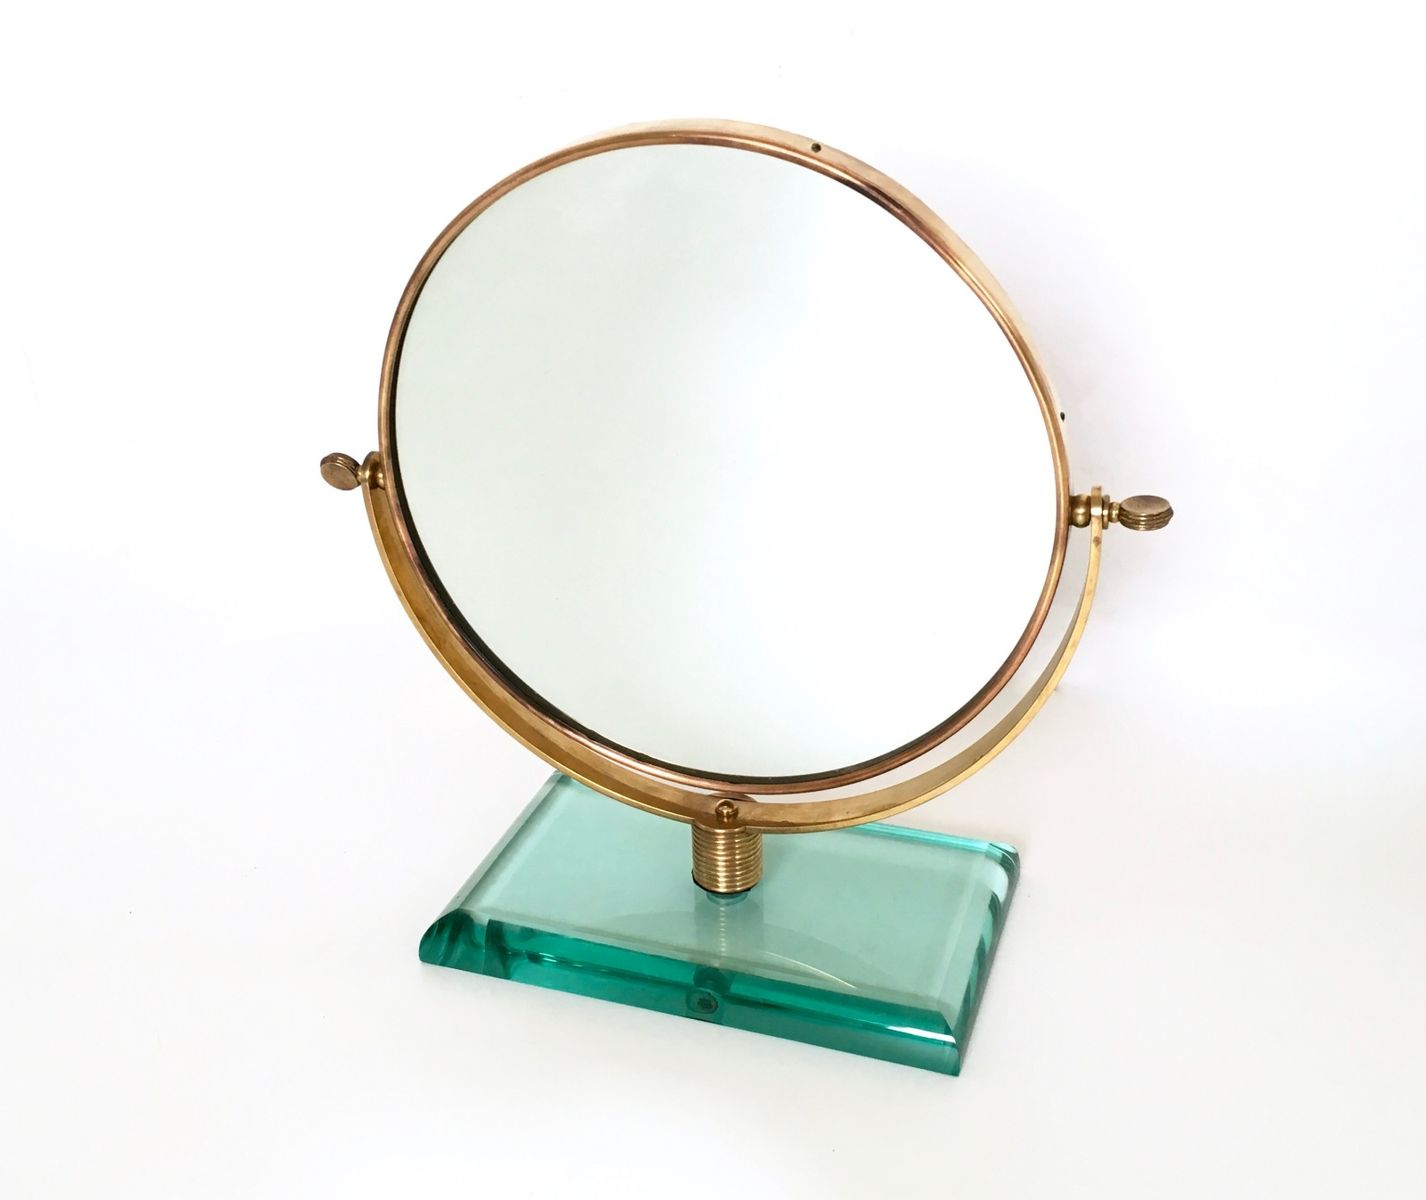 Vintage Vanity Mirror By Gio Ponti For Sale At Pamono